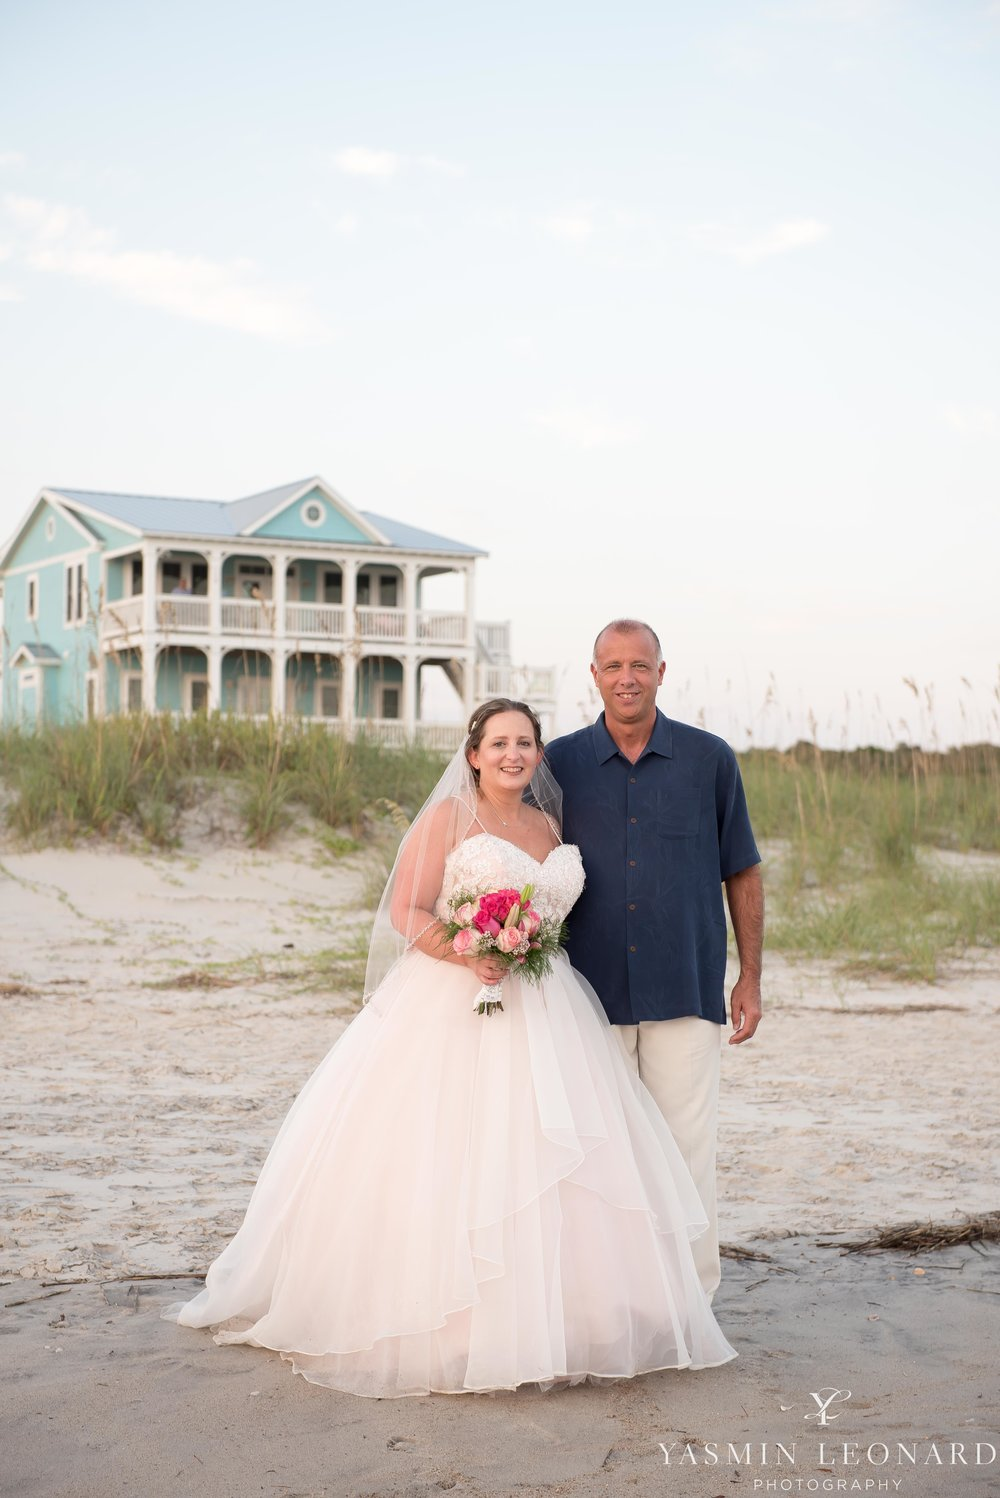 Oak Island _ Oak Island Wedding _ Beach Wedding_NC Beach Wedding_NC Destination Photographer_NC Wedding Photographer_Yasmin Leonard Photography_Beach Themed Wedding-40.jpg